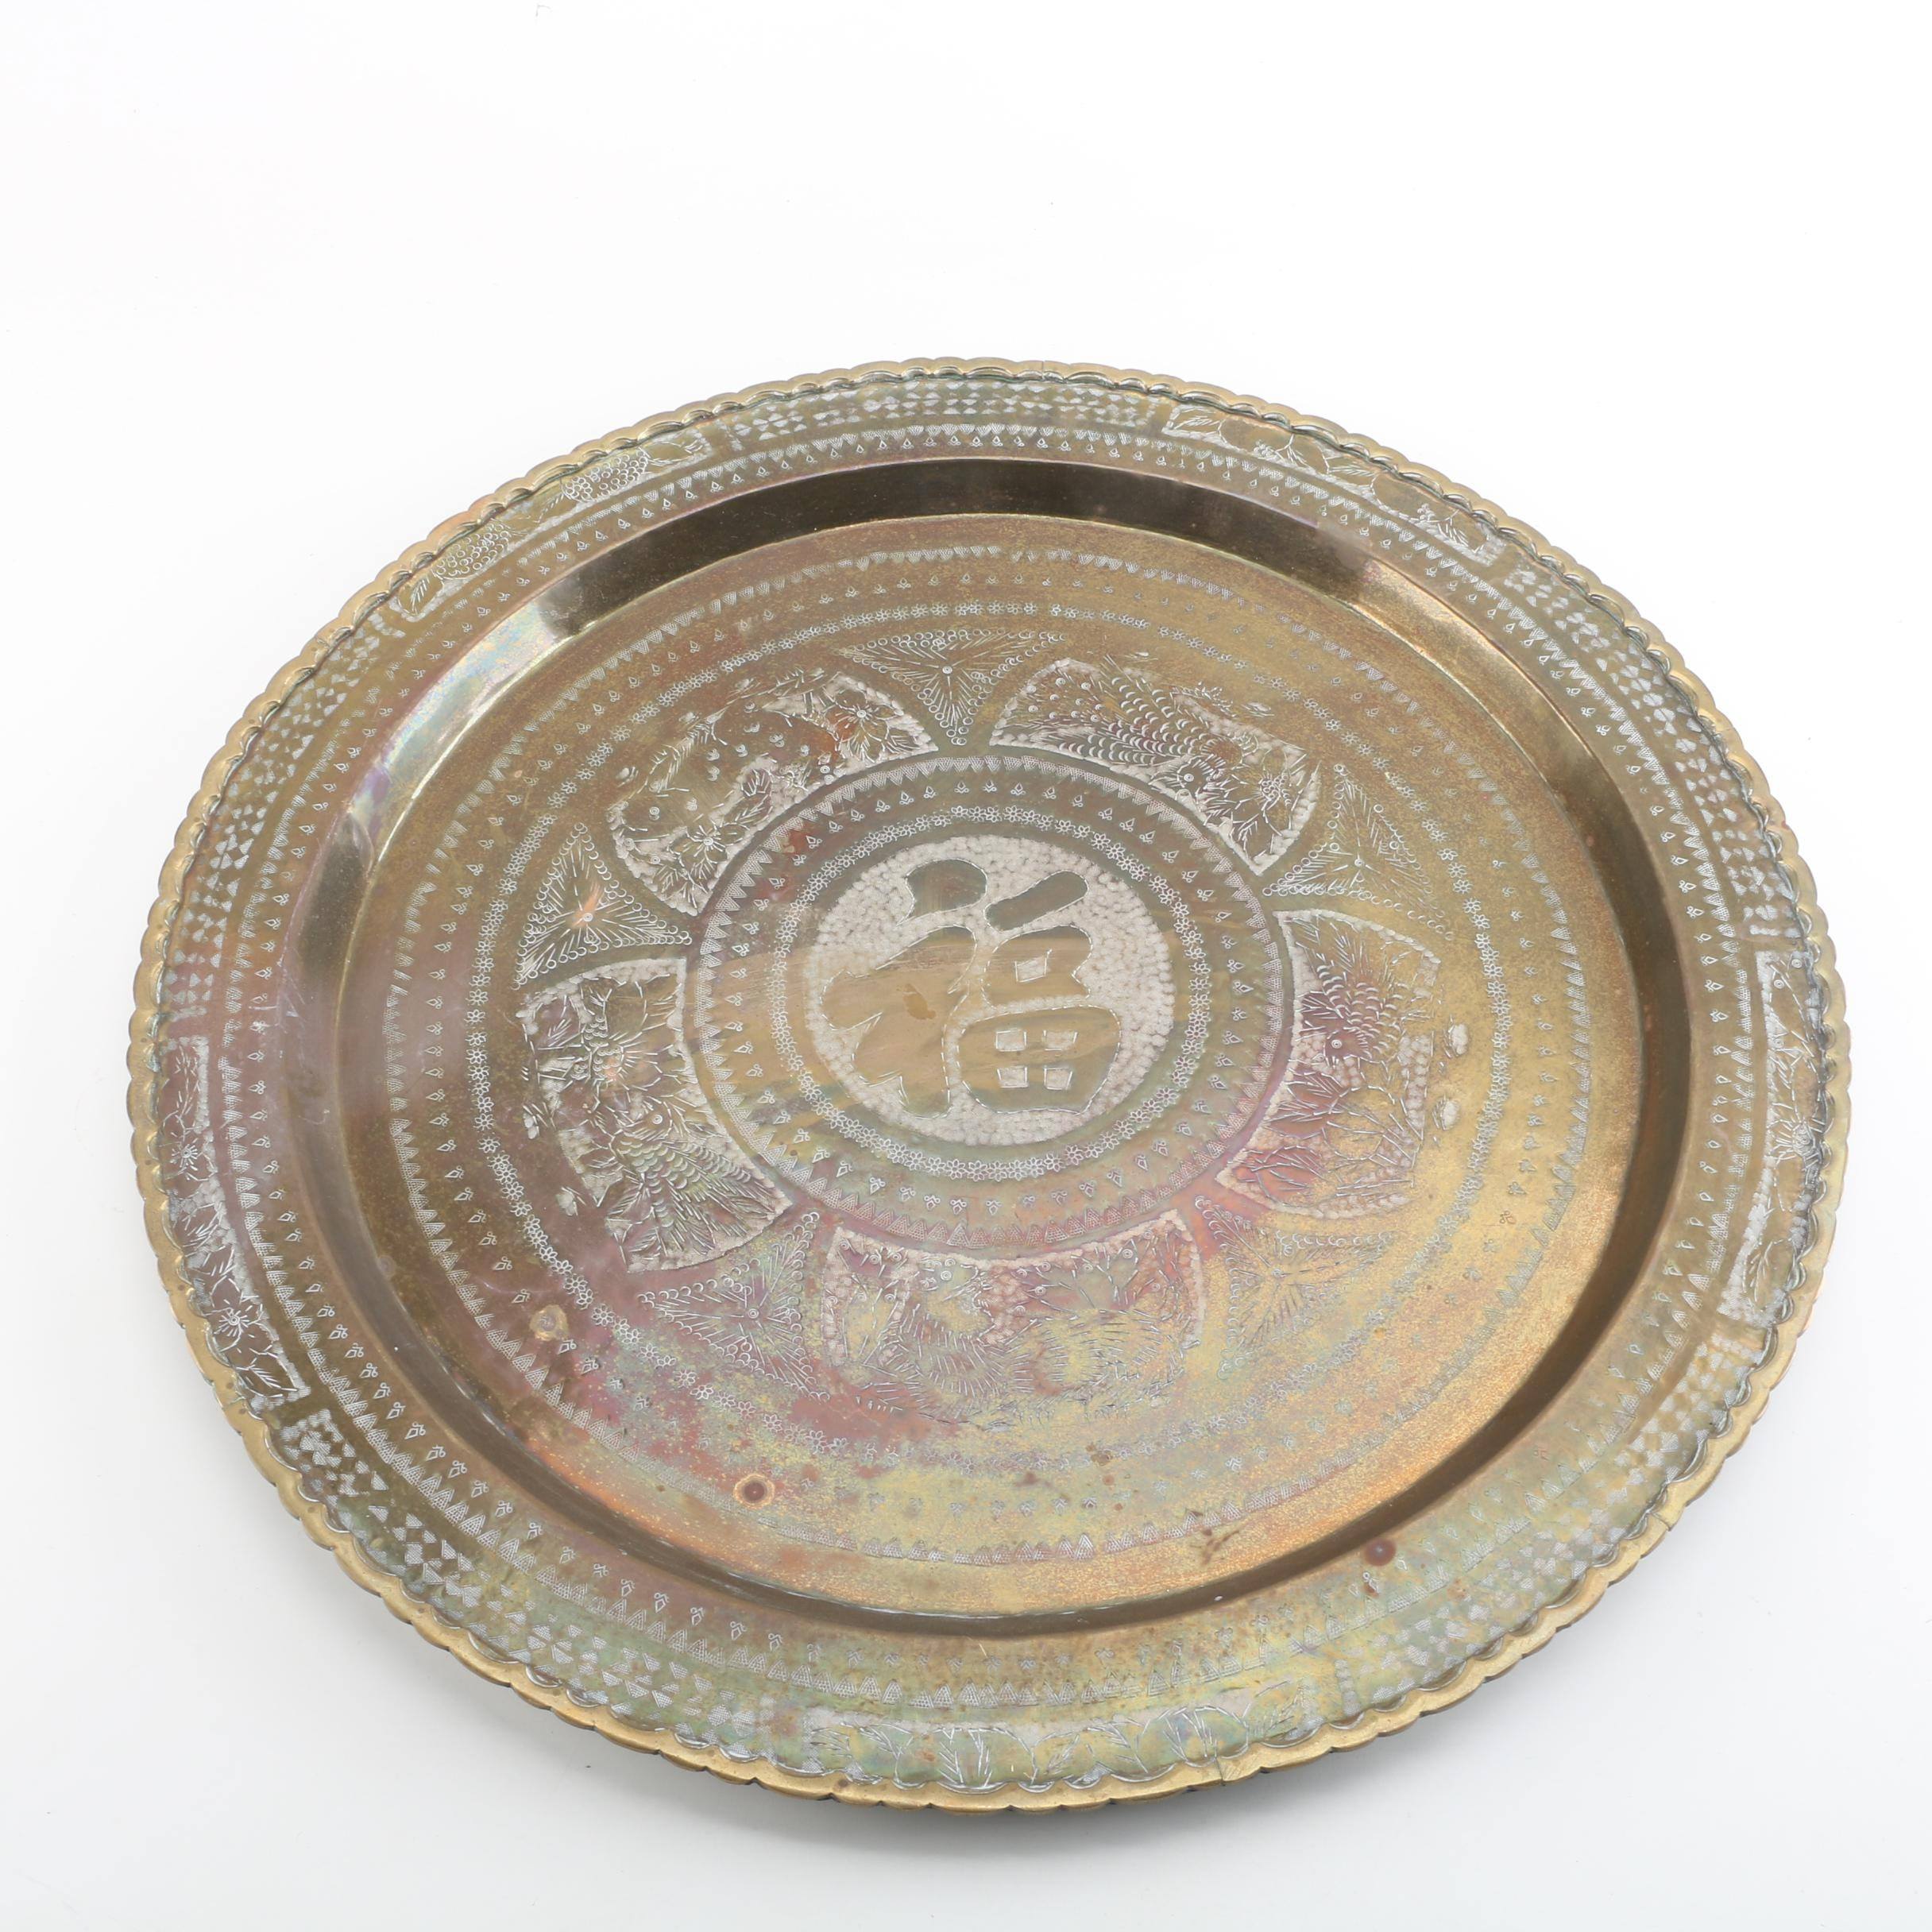 Vintage Chinese Brass Decorative Serving Platter